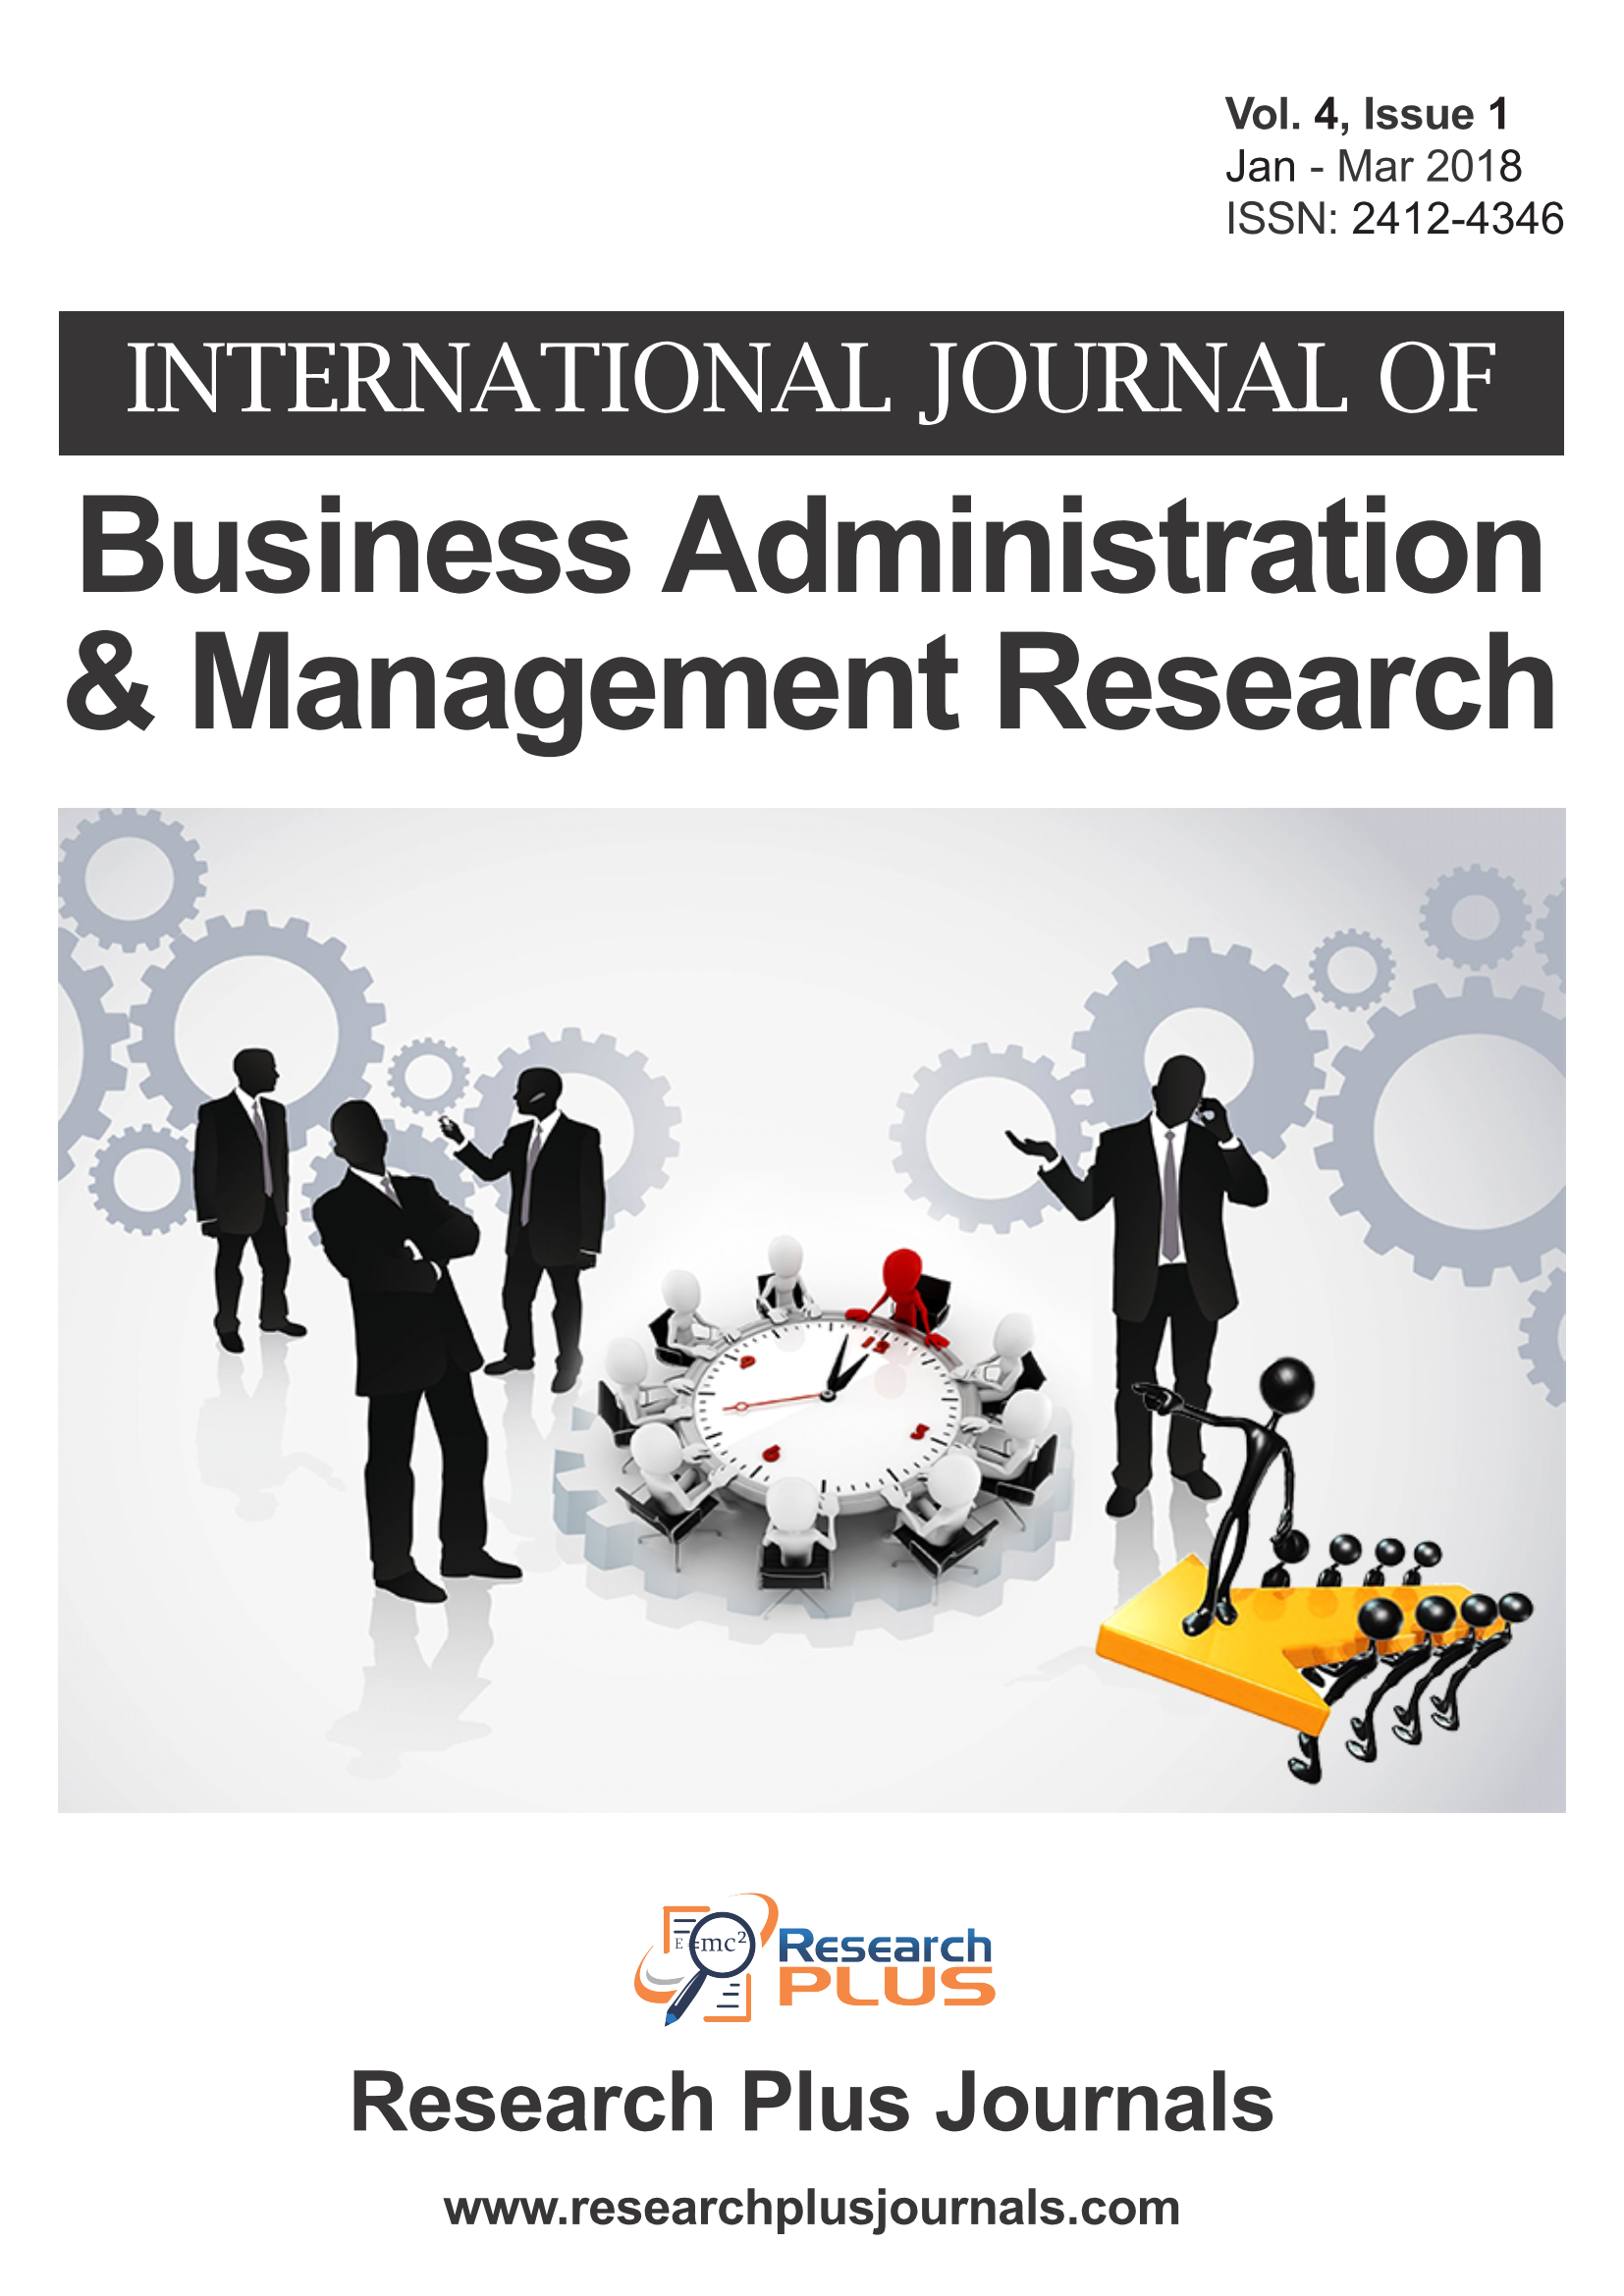 Volume 4, Issue 1, International Journal of Business Administration and Management Research (IJBAMR) (Online ISSN: 2412-4346)